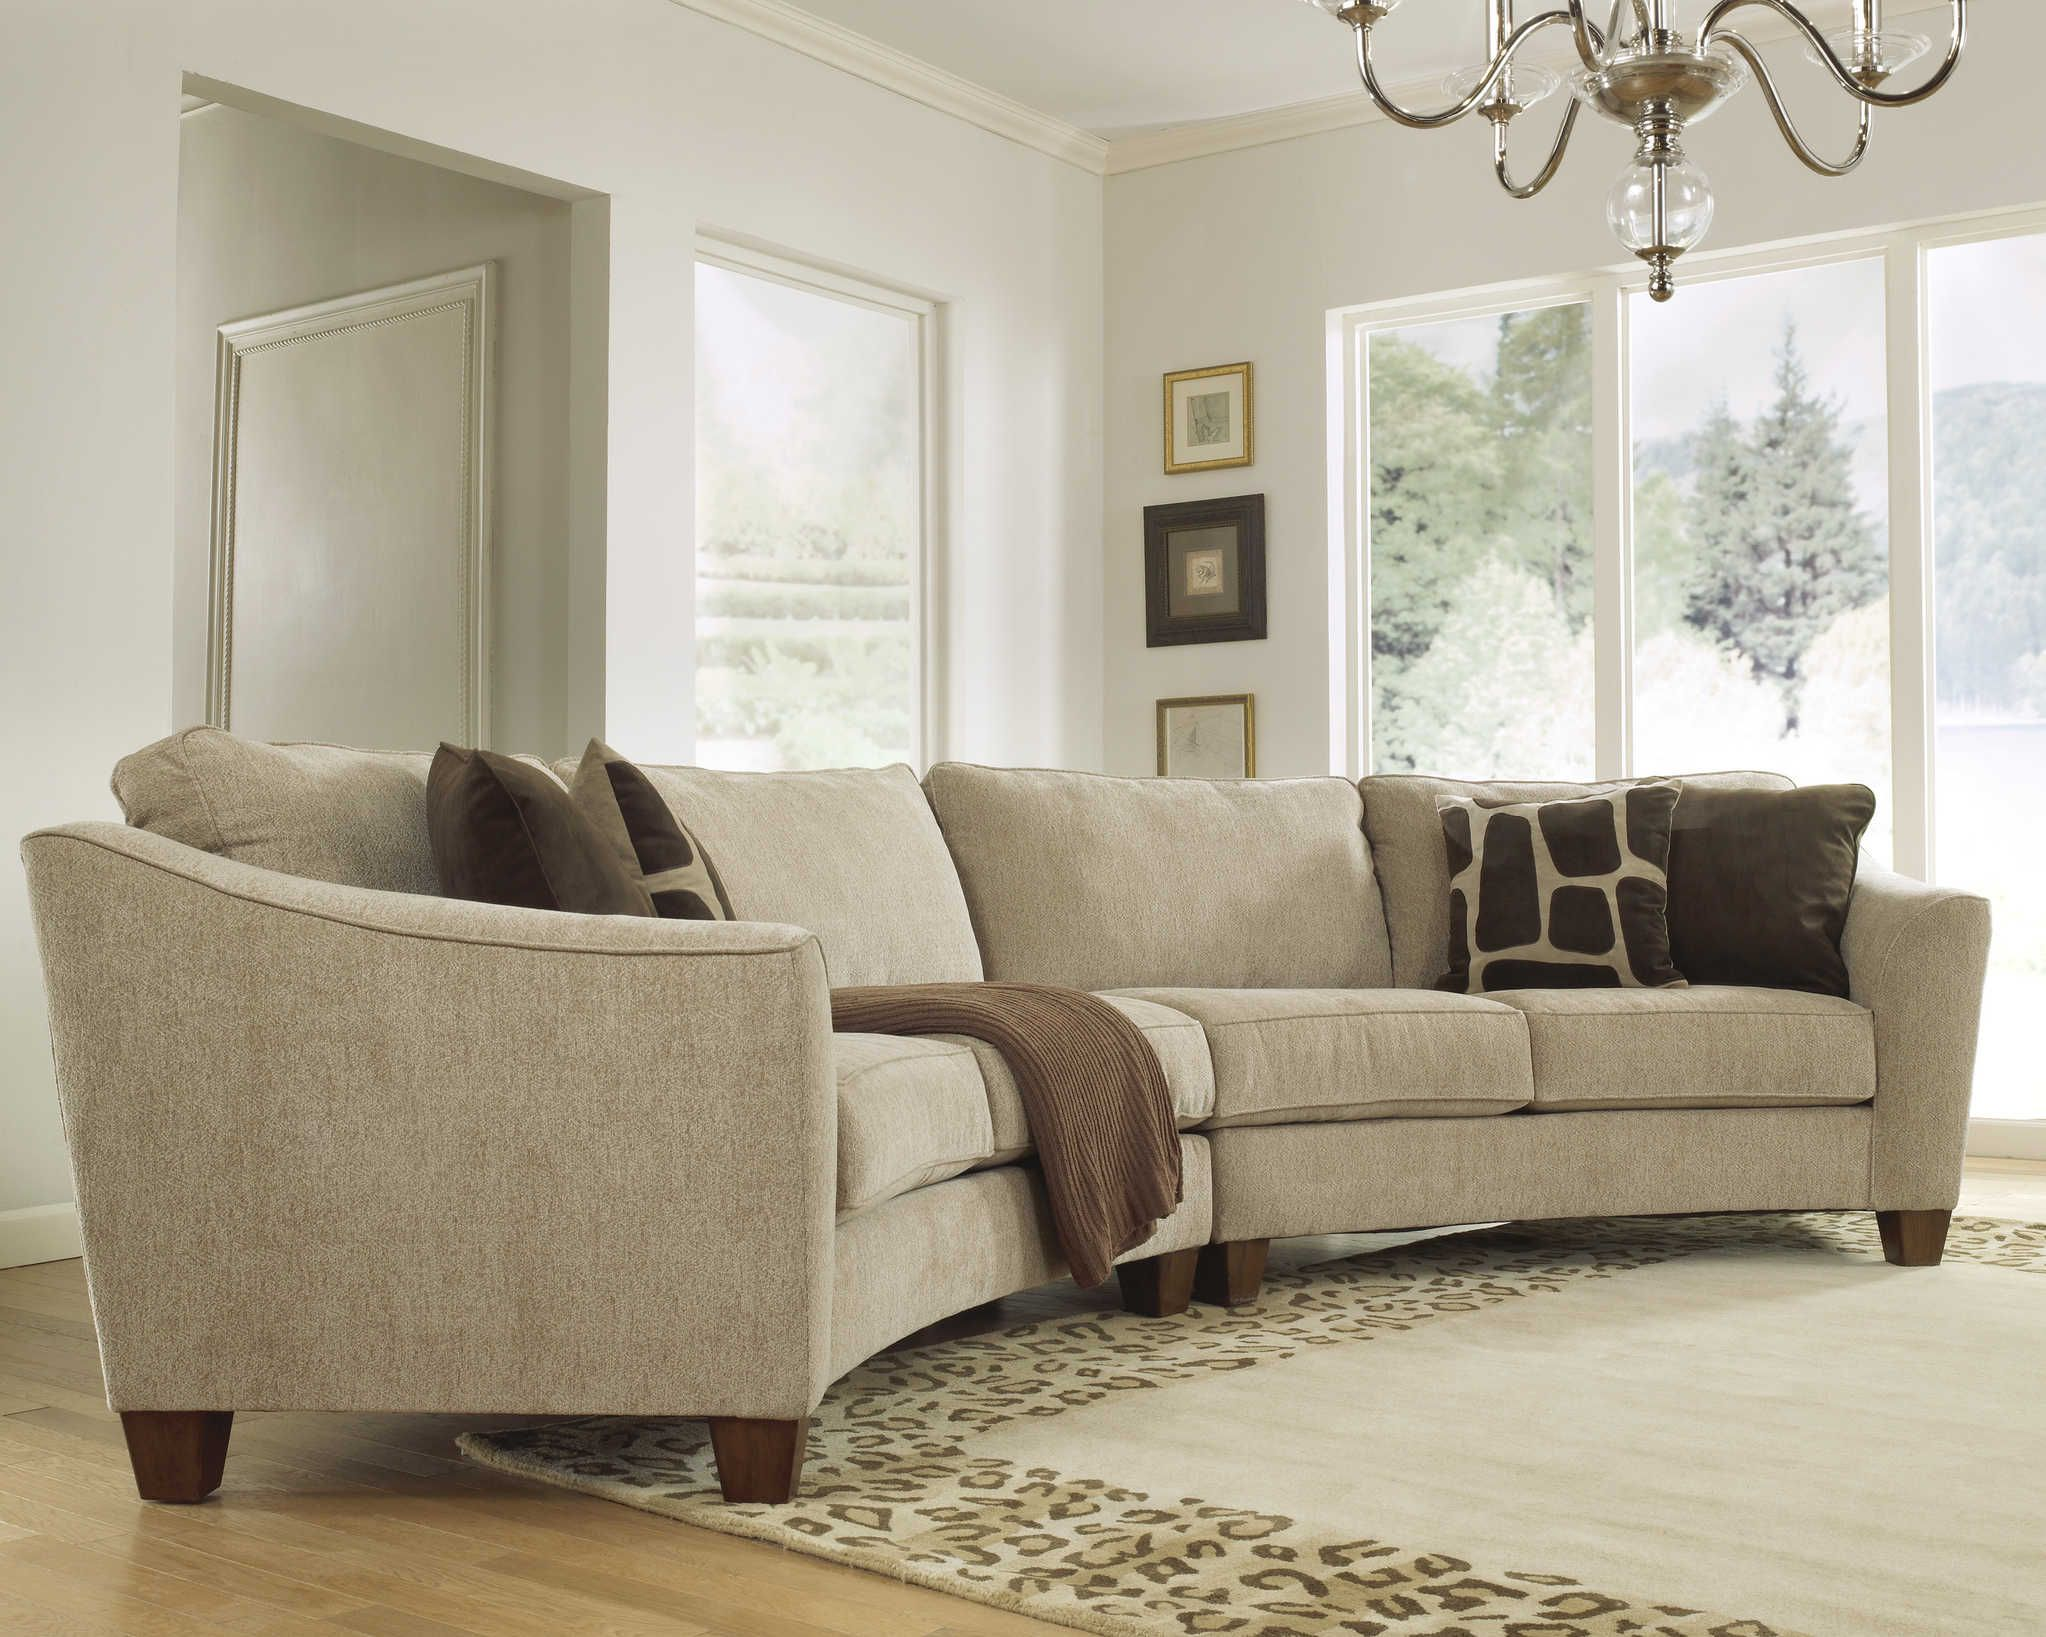 Ashley Levon Sofa & Loveseat Homemakers Furniture